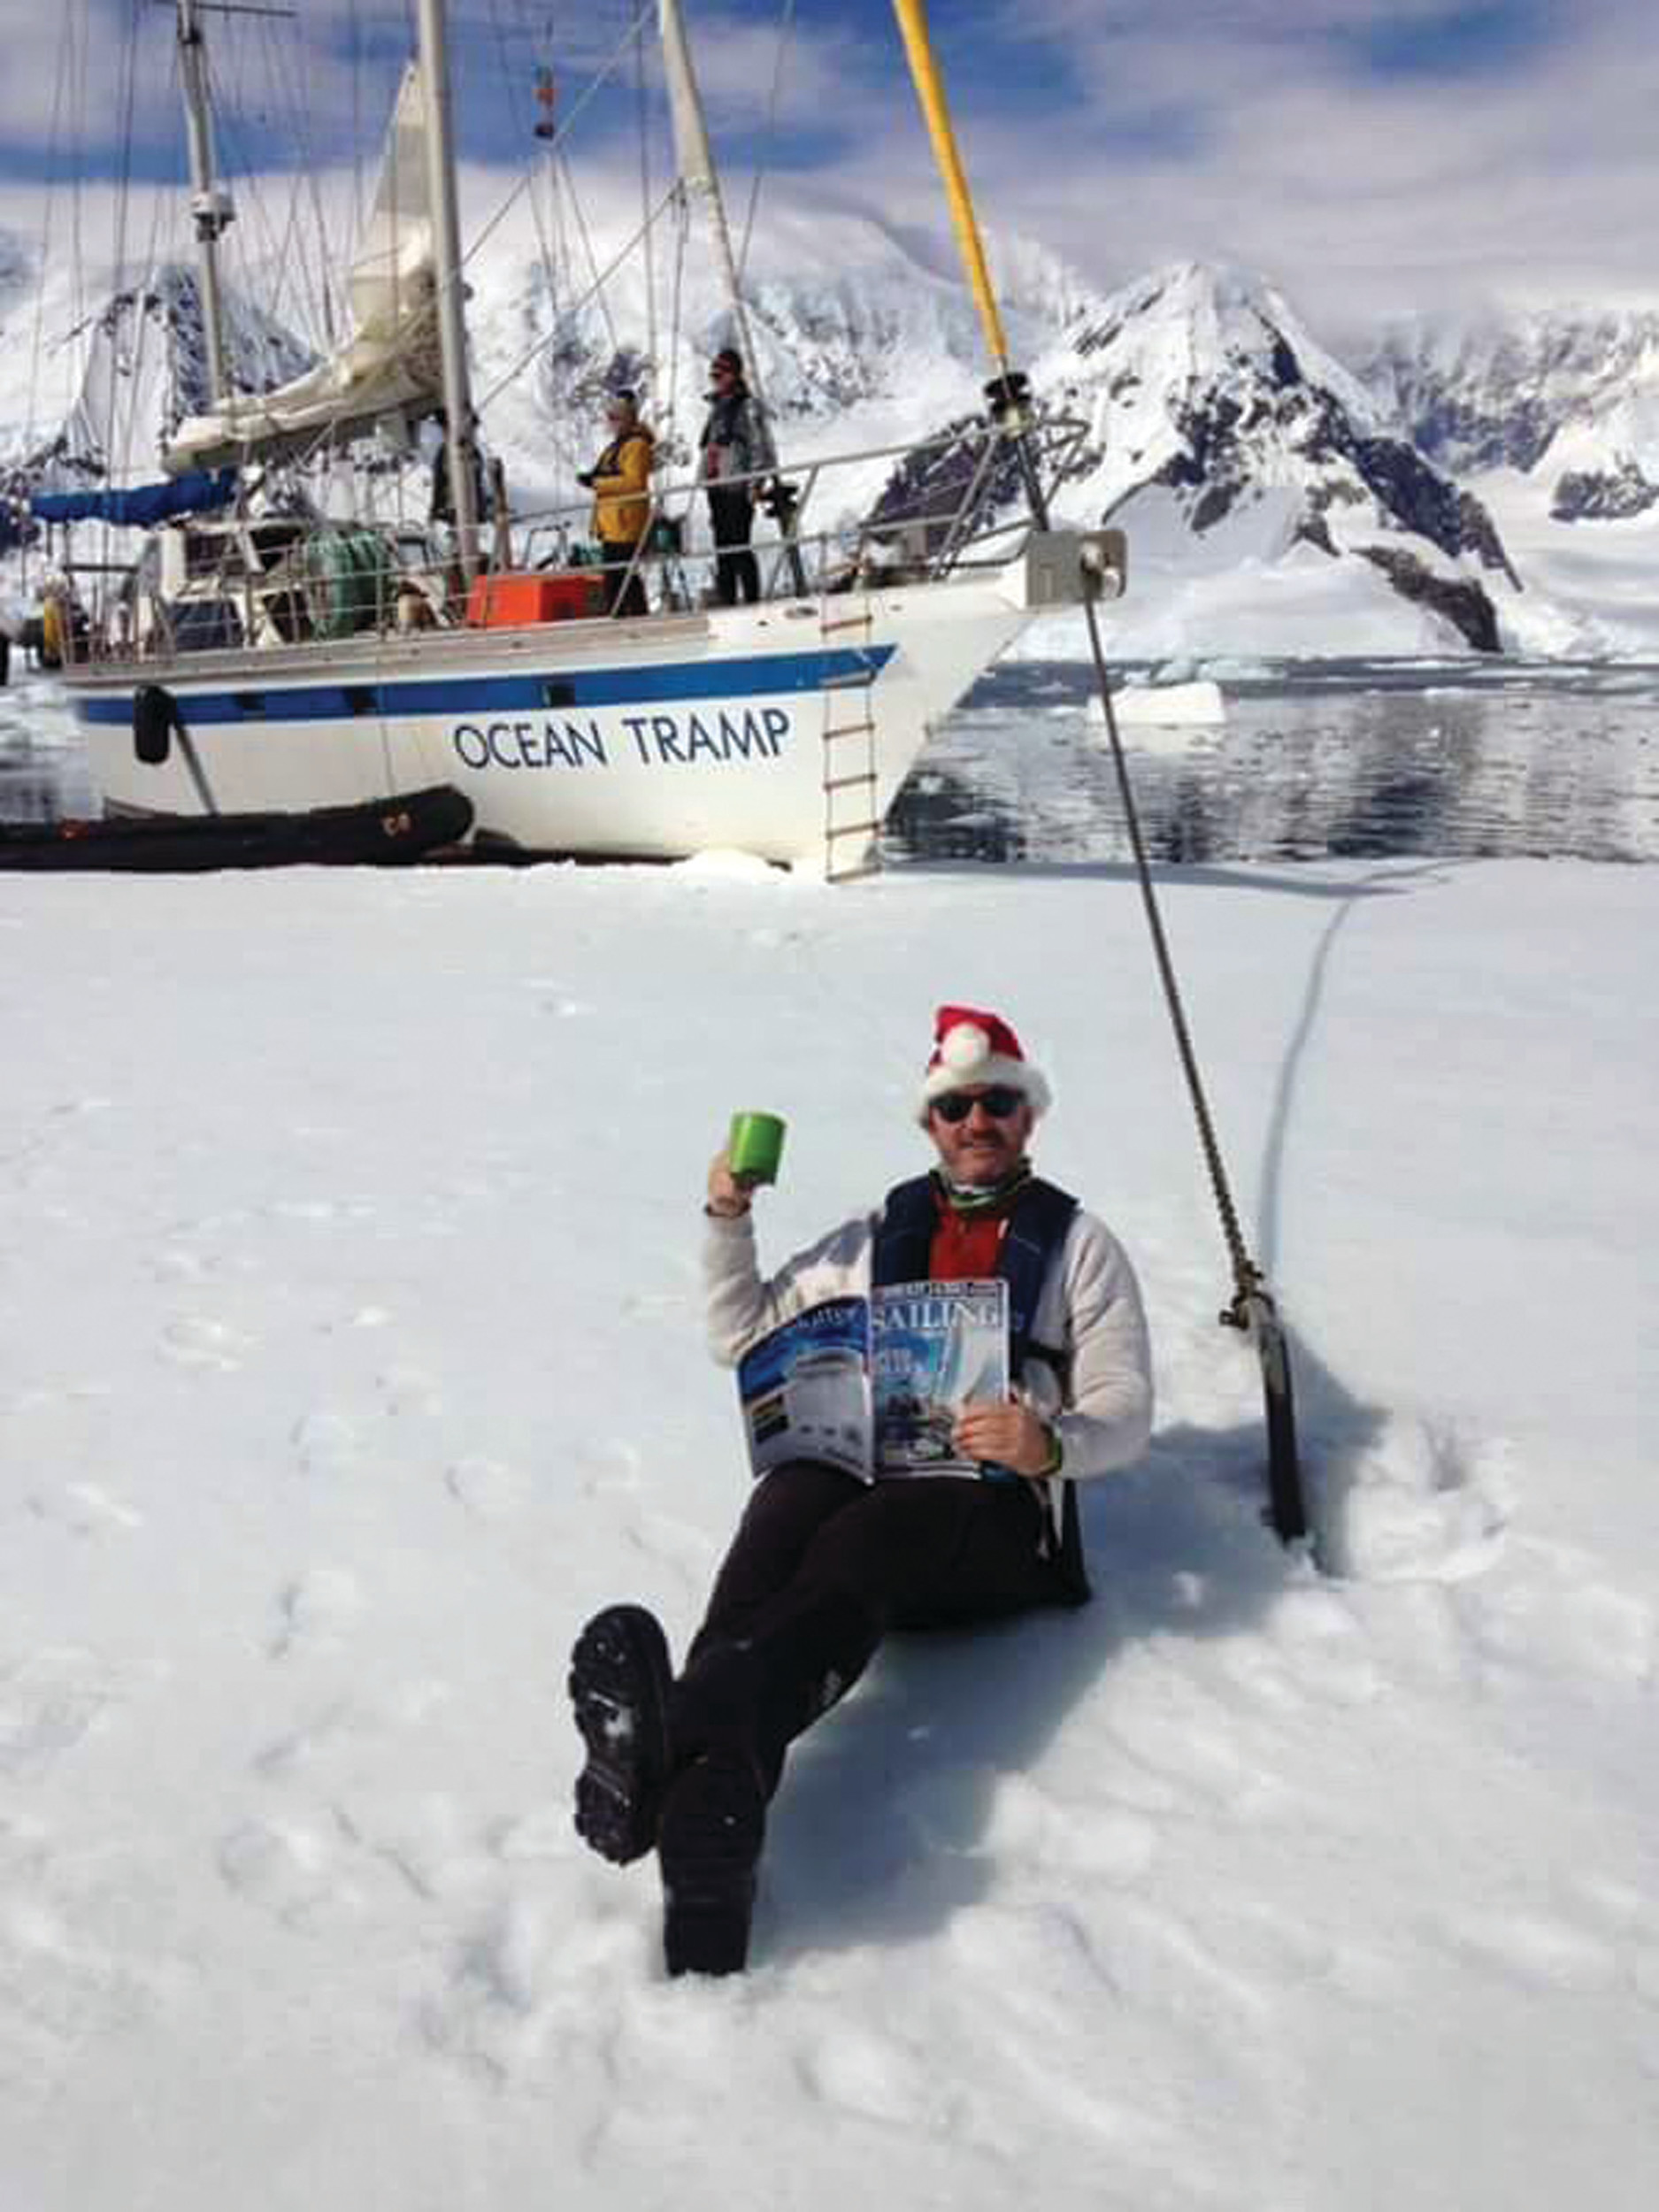 ENJOYING LIFE: Mellor enjoys a beverage while relaxing on the ice in Antarctica. He hopes to have visited 80 countries by the fourth year of his expedition.